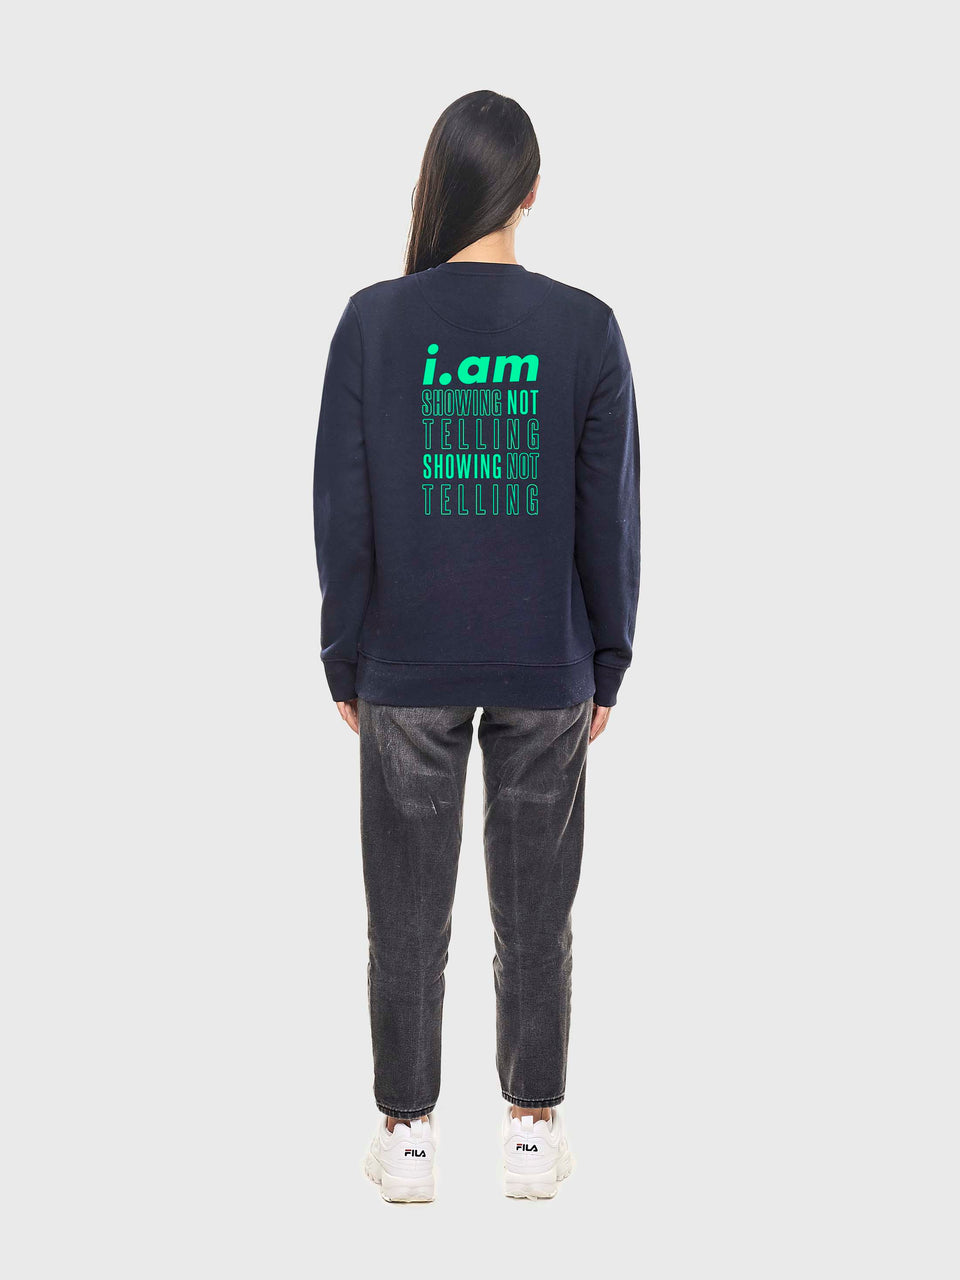 Showing not telling - Navy - Unisex sweatshirt